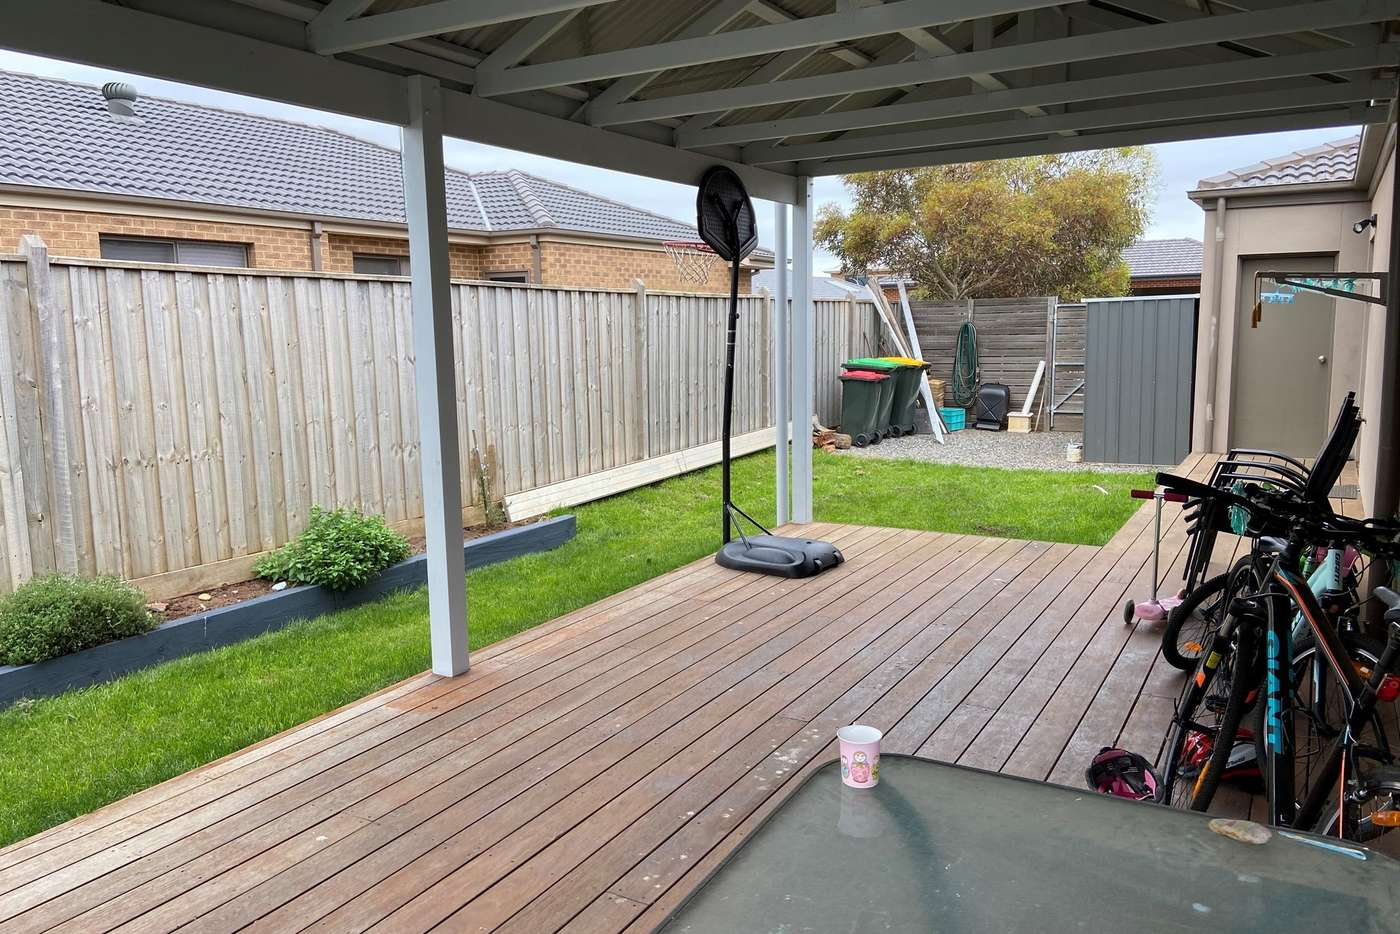 Seventh view of Homely house listing, 13 Warwick Way, Drouin VIC 3818